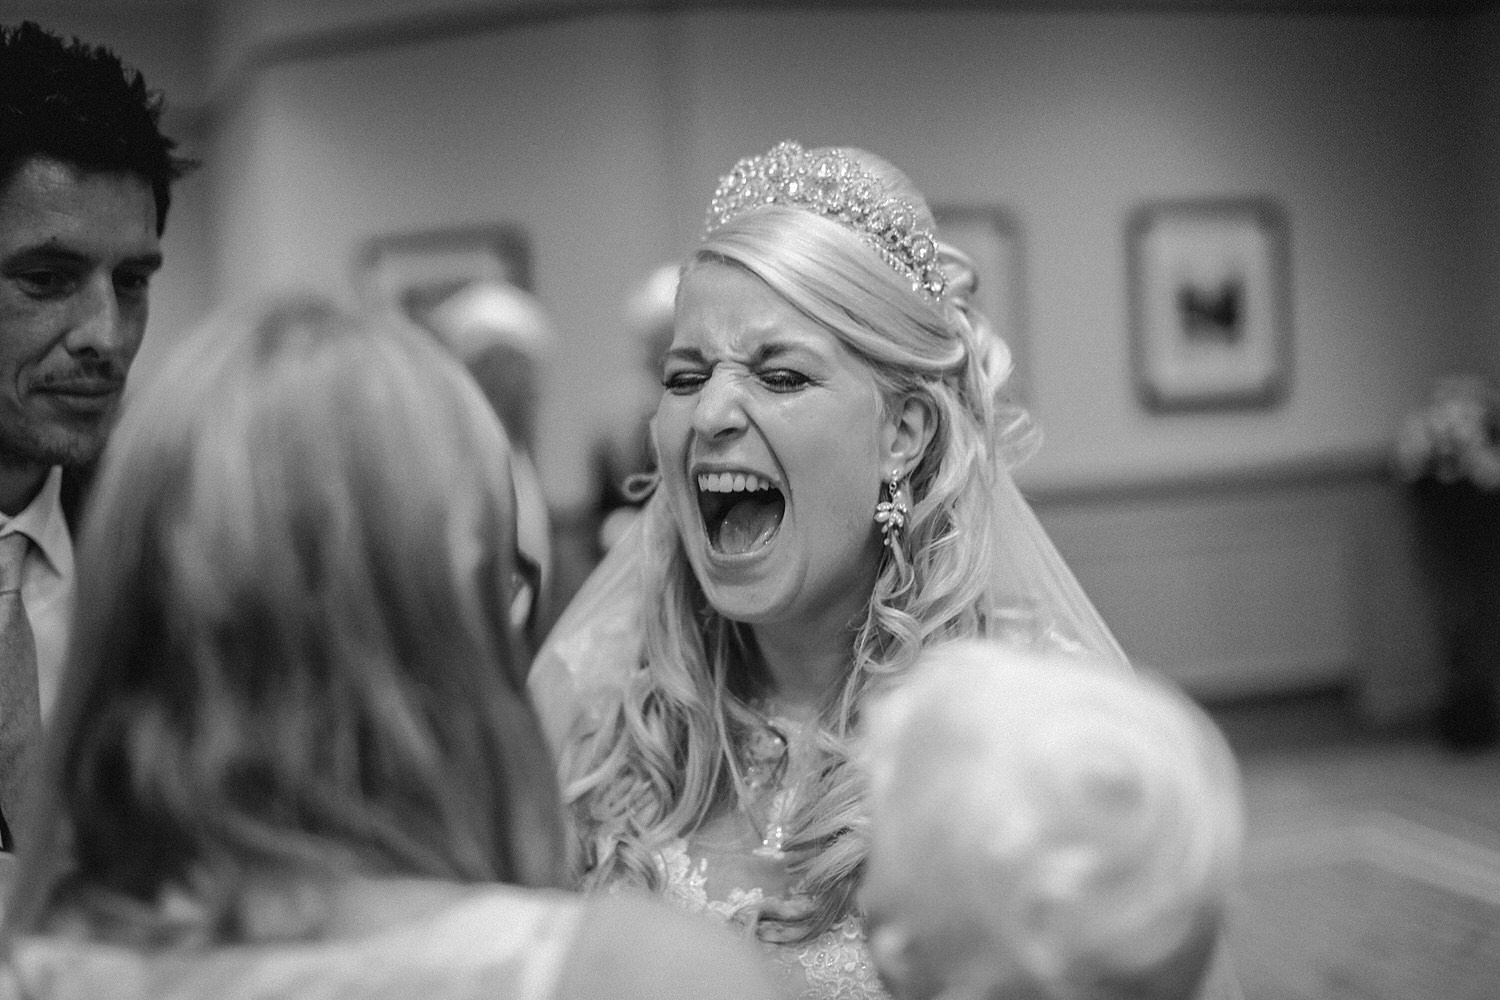 MACDONALD KILHEY COURT QUIRKY VINTAGE WEDDING PHOTOGRAPHY